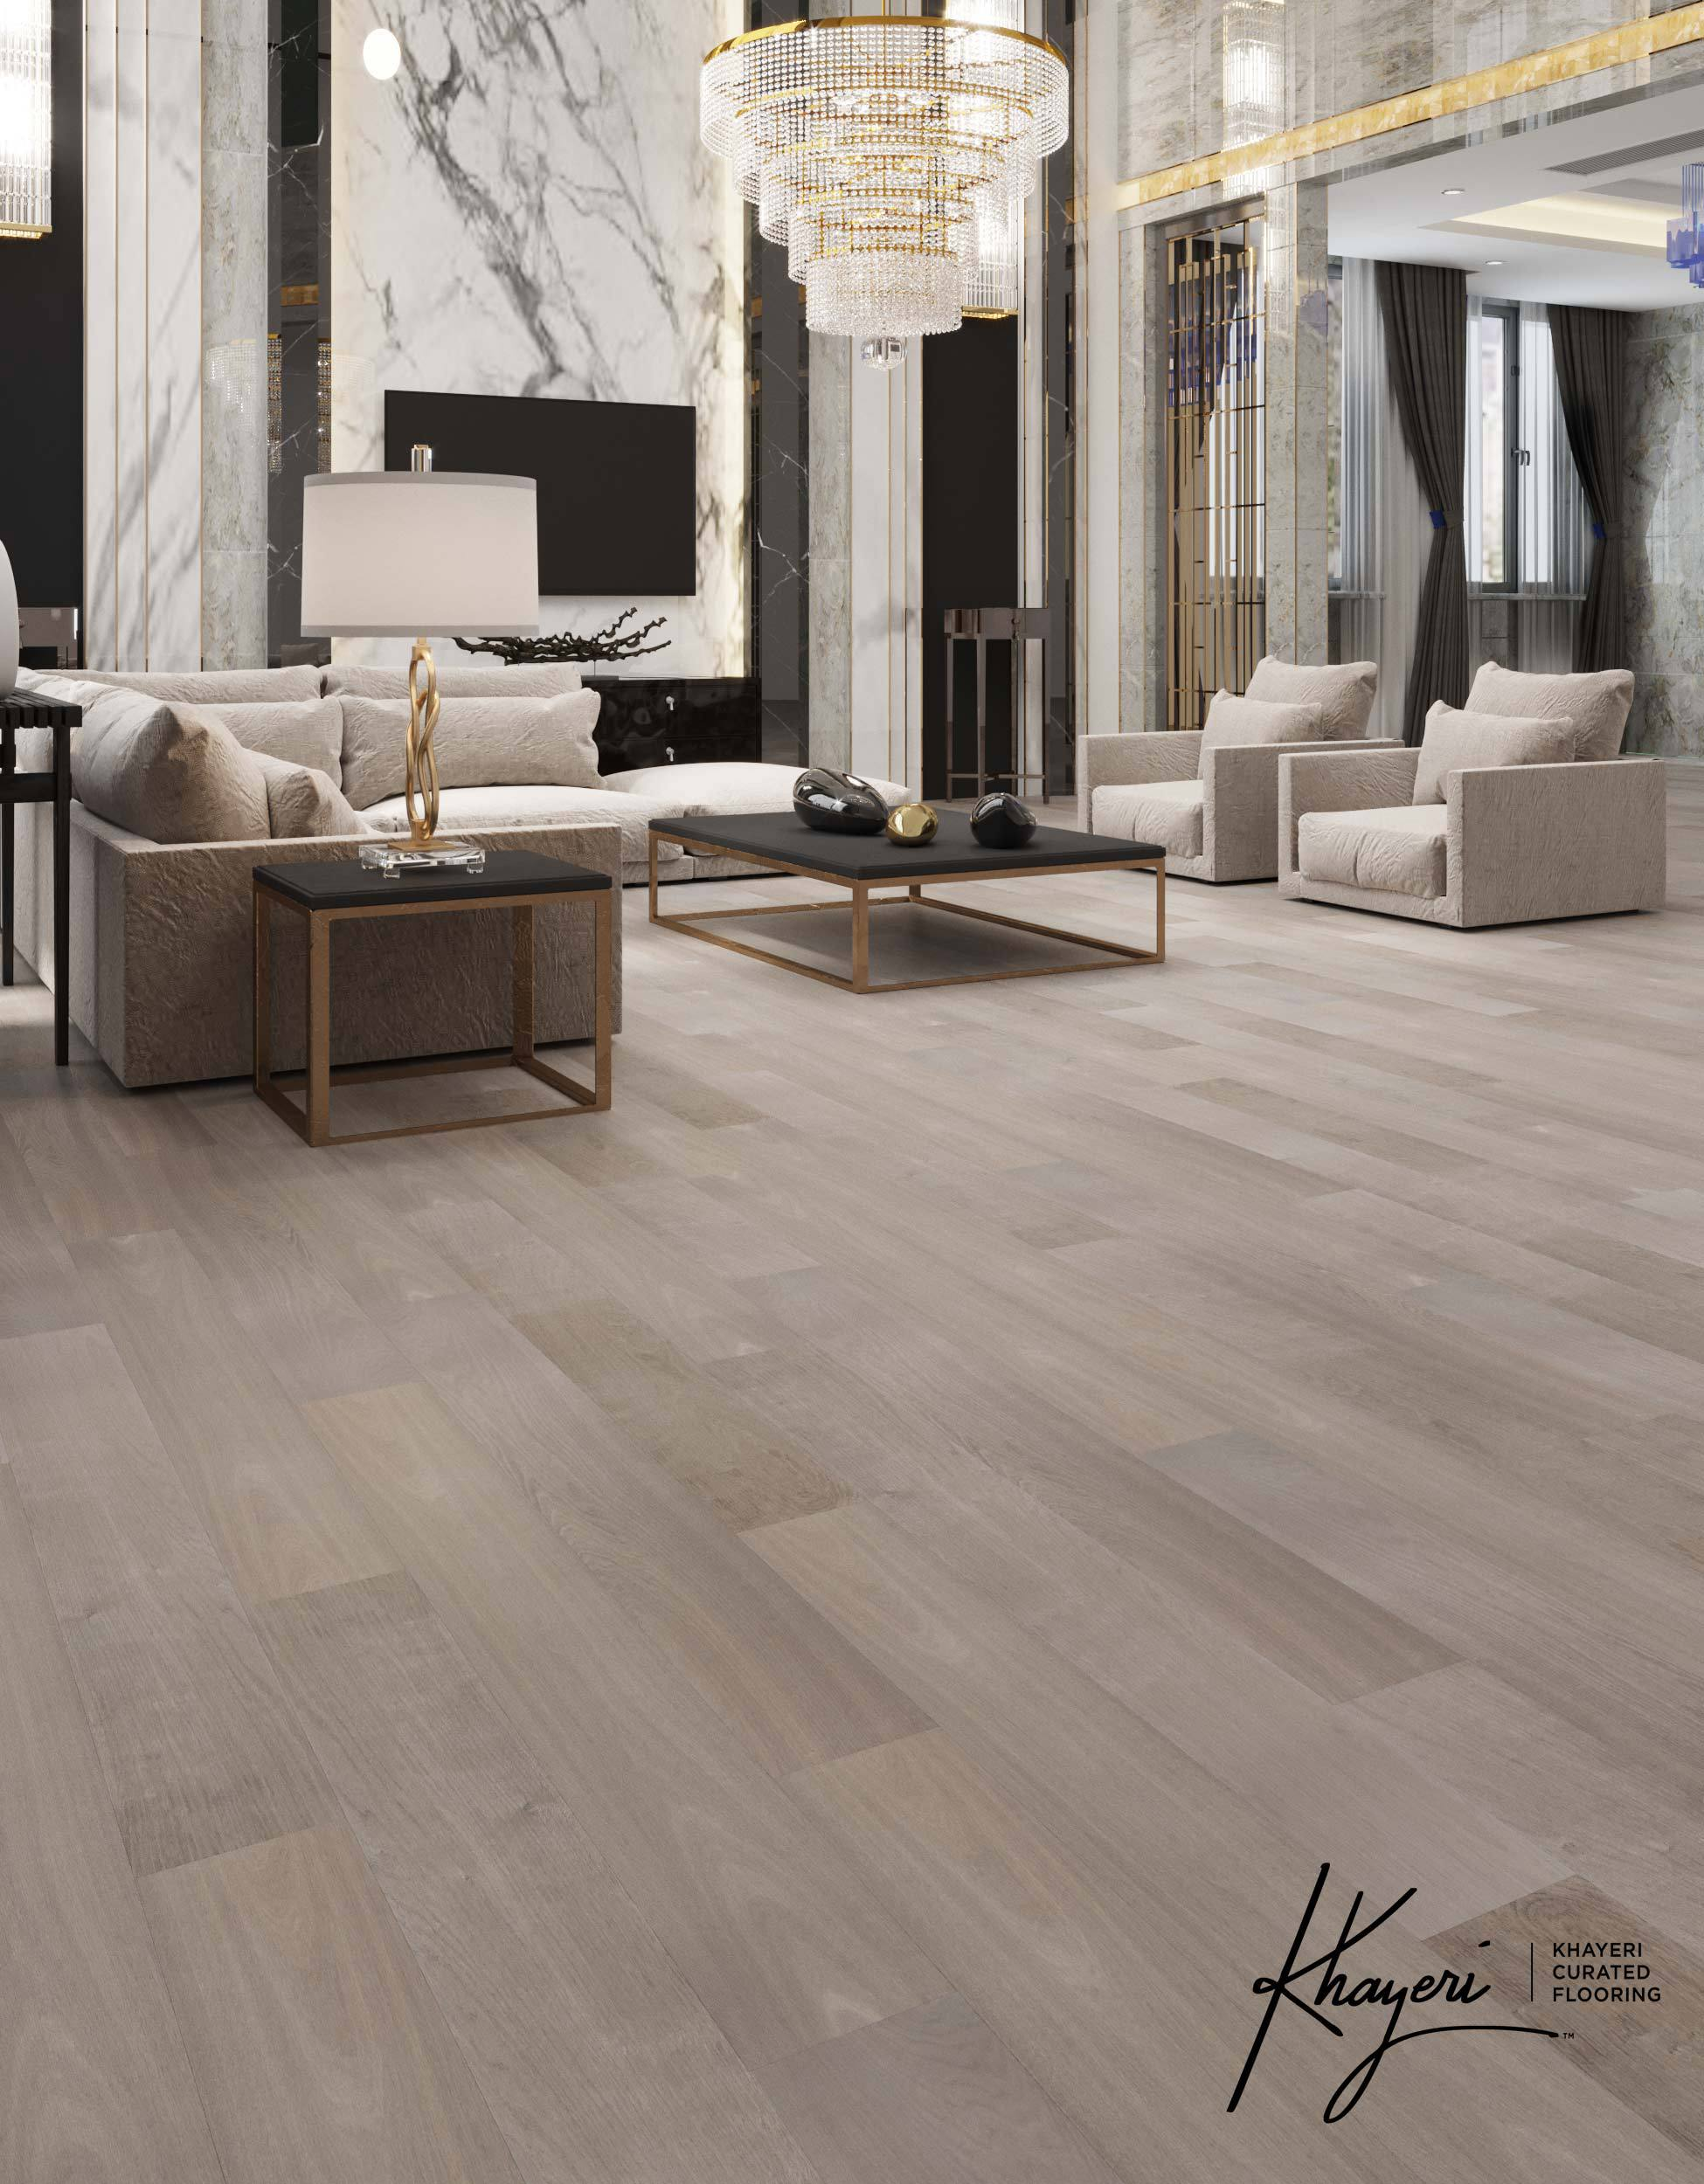 Khayeri Curated Flooring